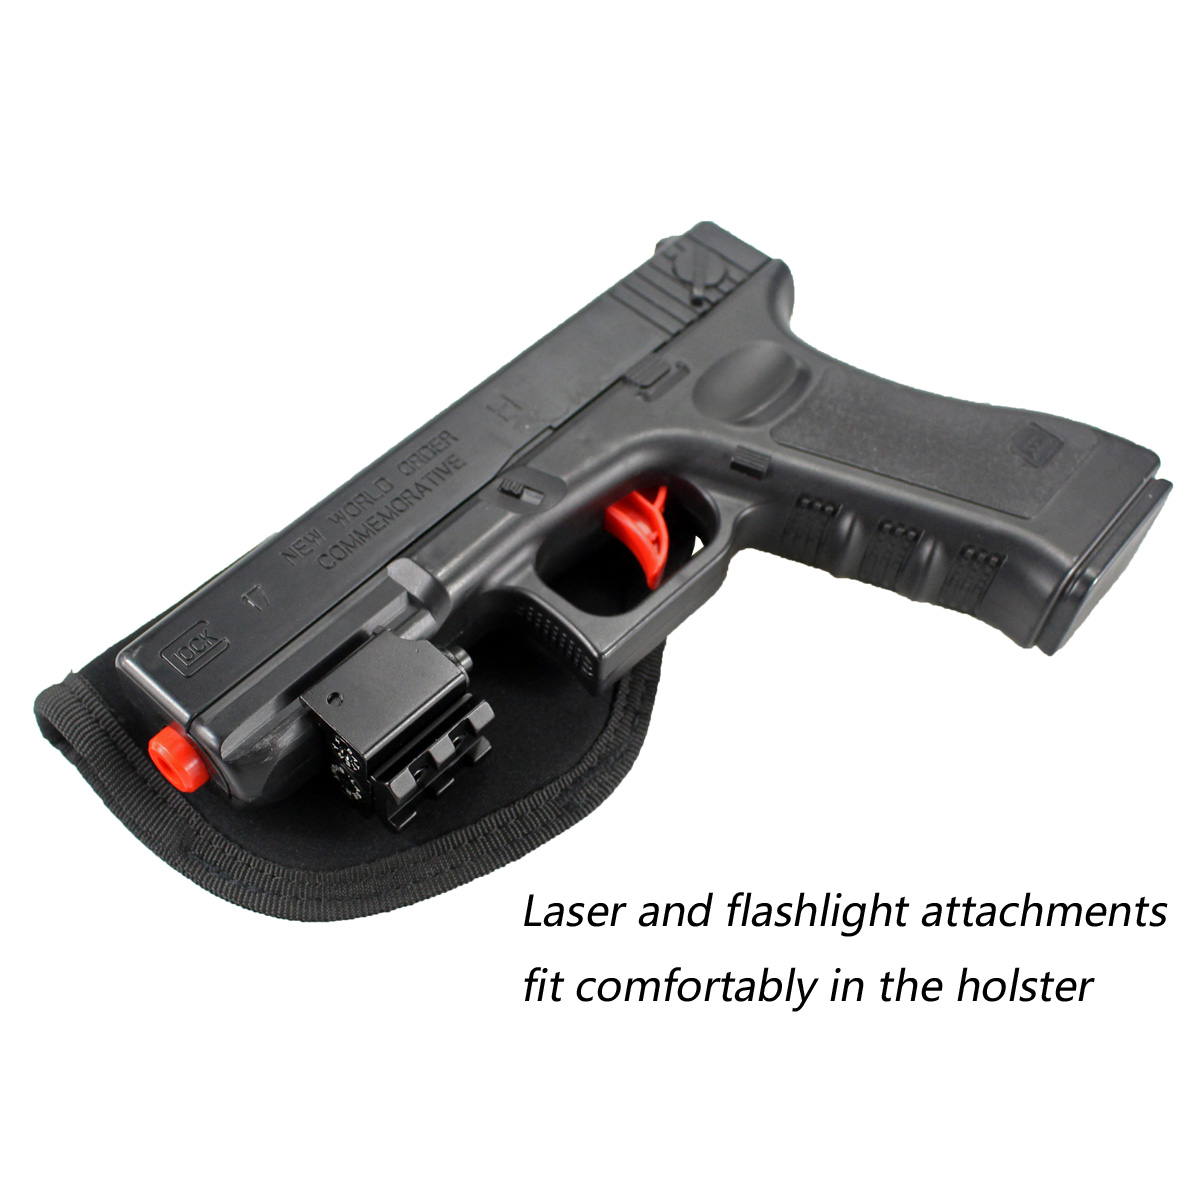 Image 2 - Tactical Concealed Carry Universal Neoprene IWB Holster with Extra Mag Holster for Right Hand-in Holsters from Sports & Entertainment